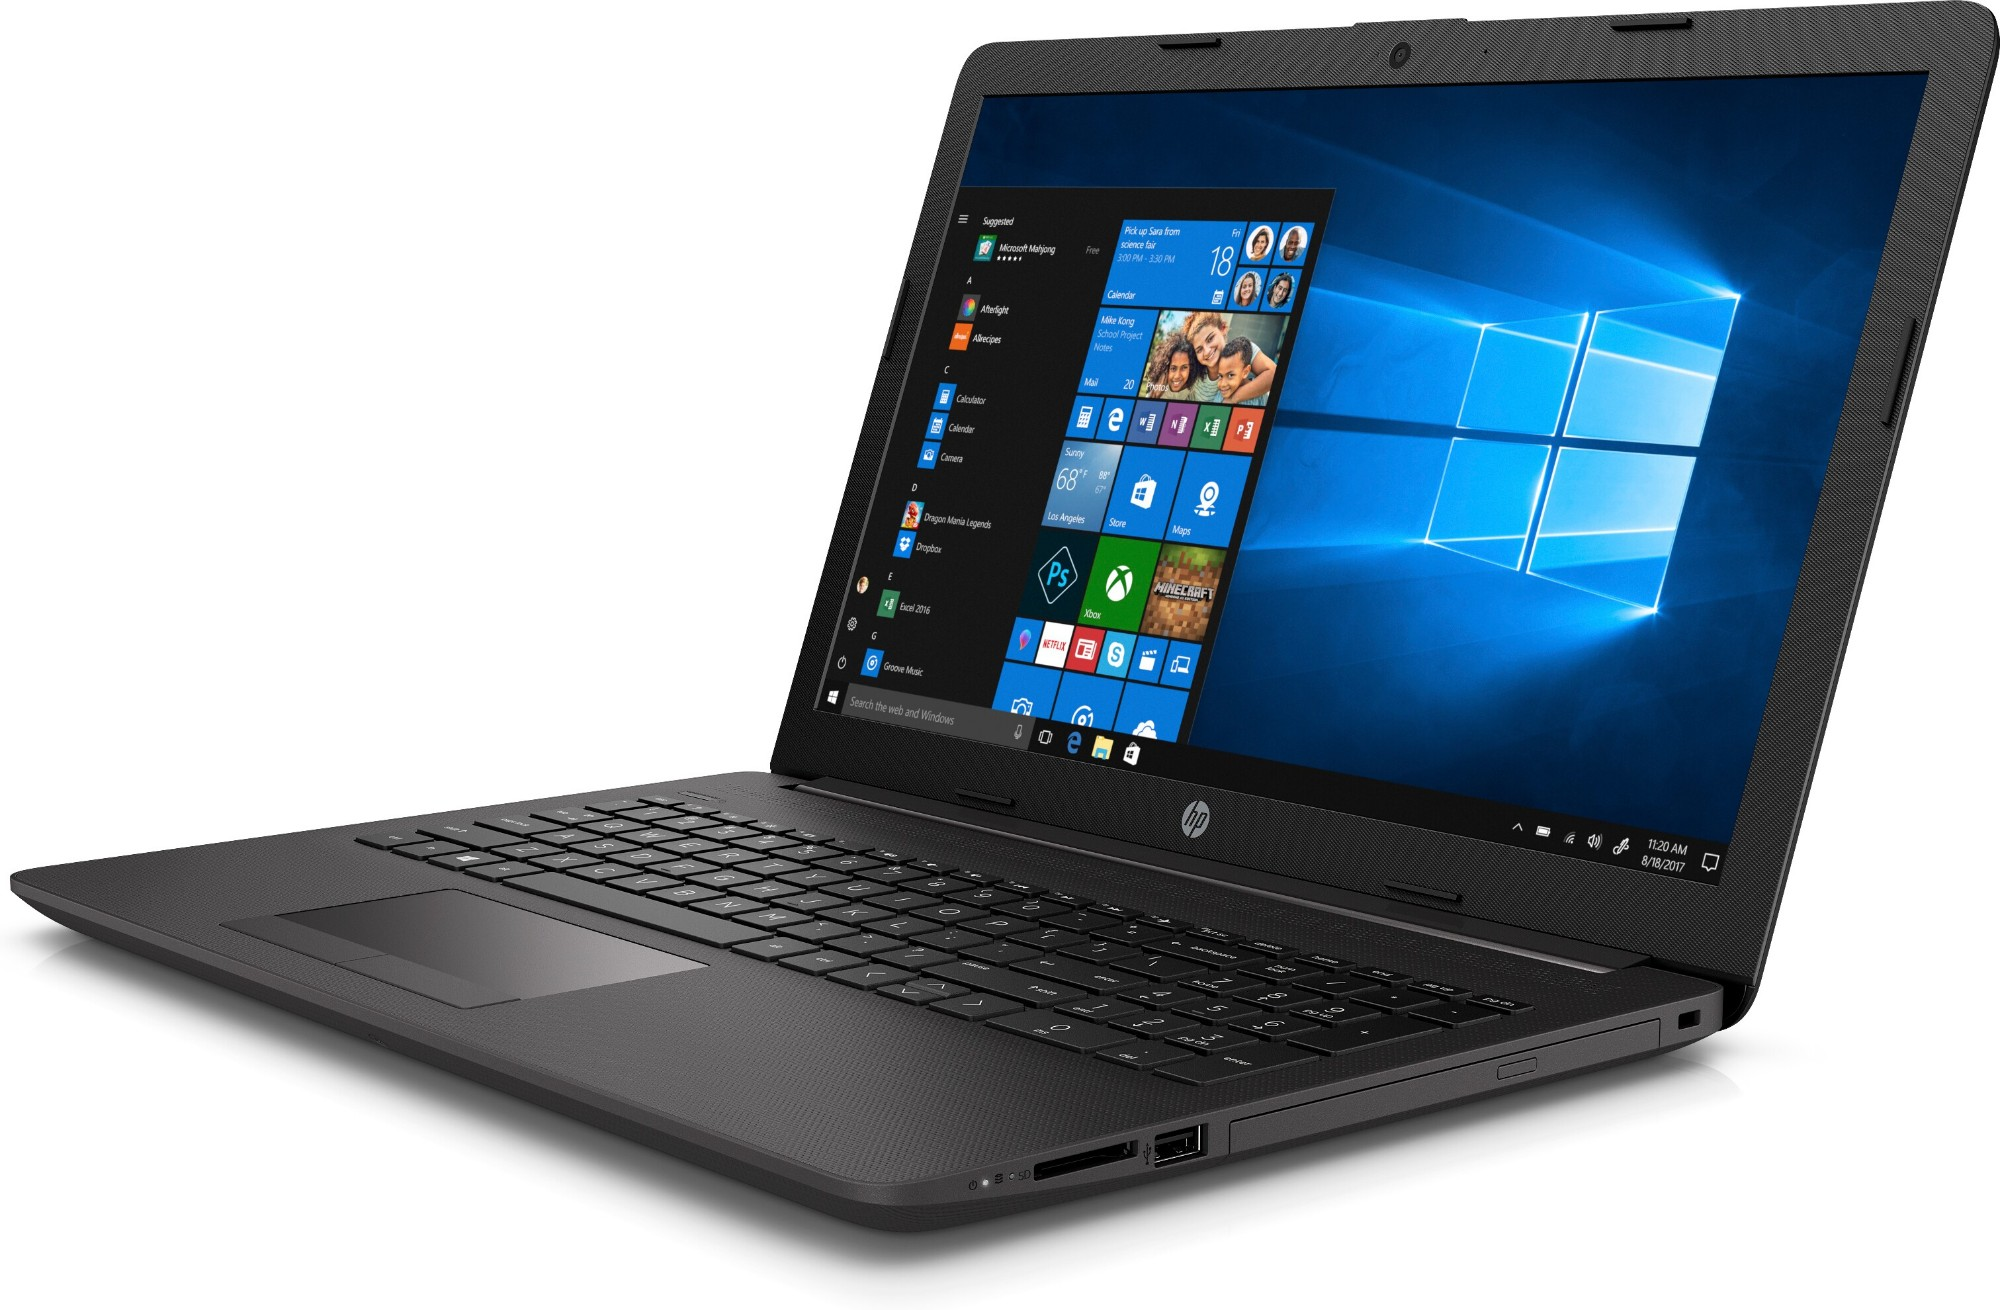 "HP 255 G7 Grey Notebook 39.6 cm (15.6"") 1366 x 768 pixels AMD Ryzen 3 8 GB DDR4-SDRAM 256 GB SSD Wi-Fi 5 (802.11ac) Windows 10 Pro"